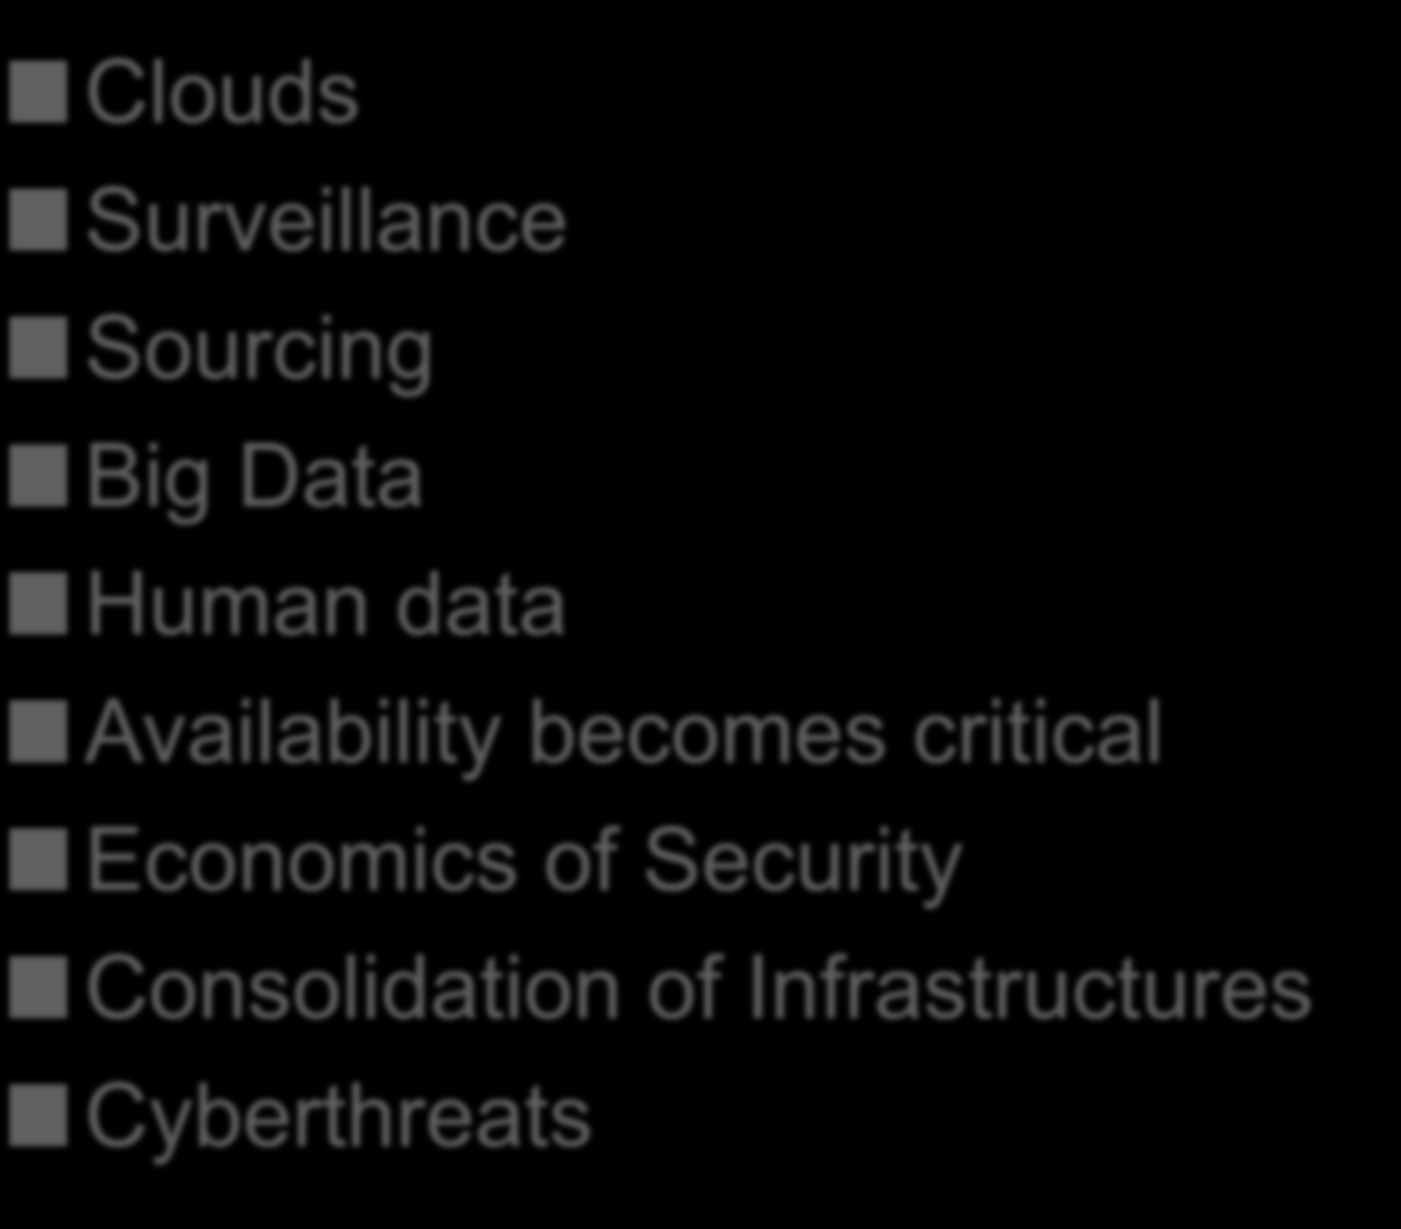 The Changing InfoSec Scene Clouds Surveillance Sourcing Big Data Human data